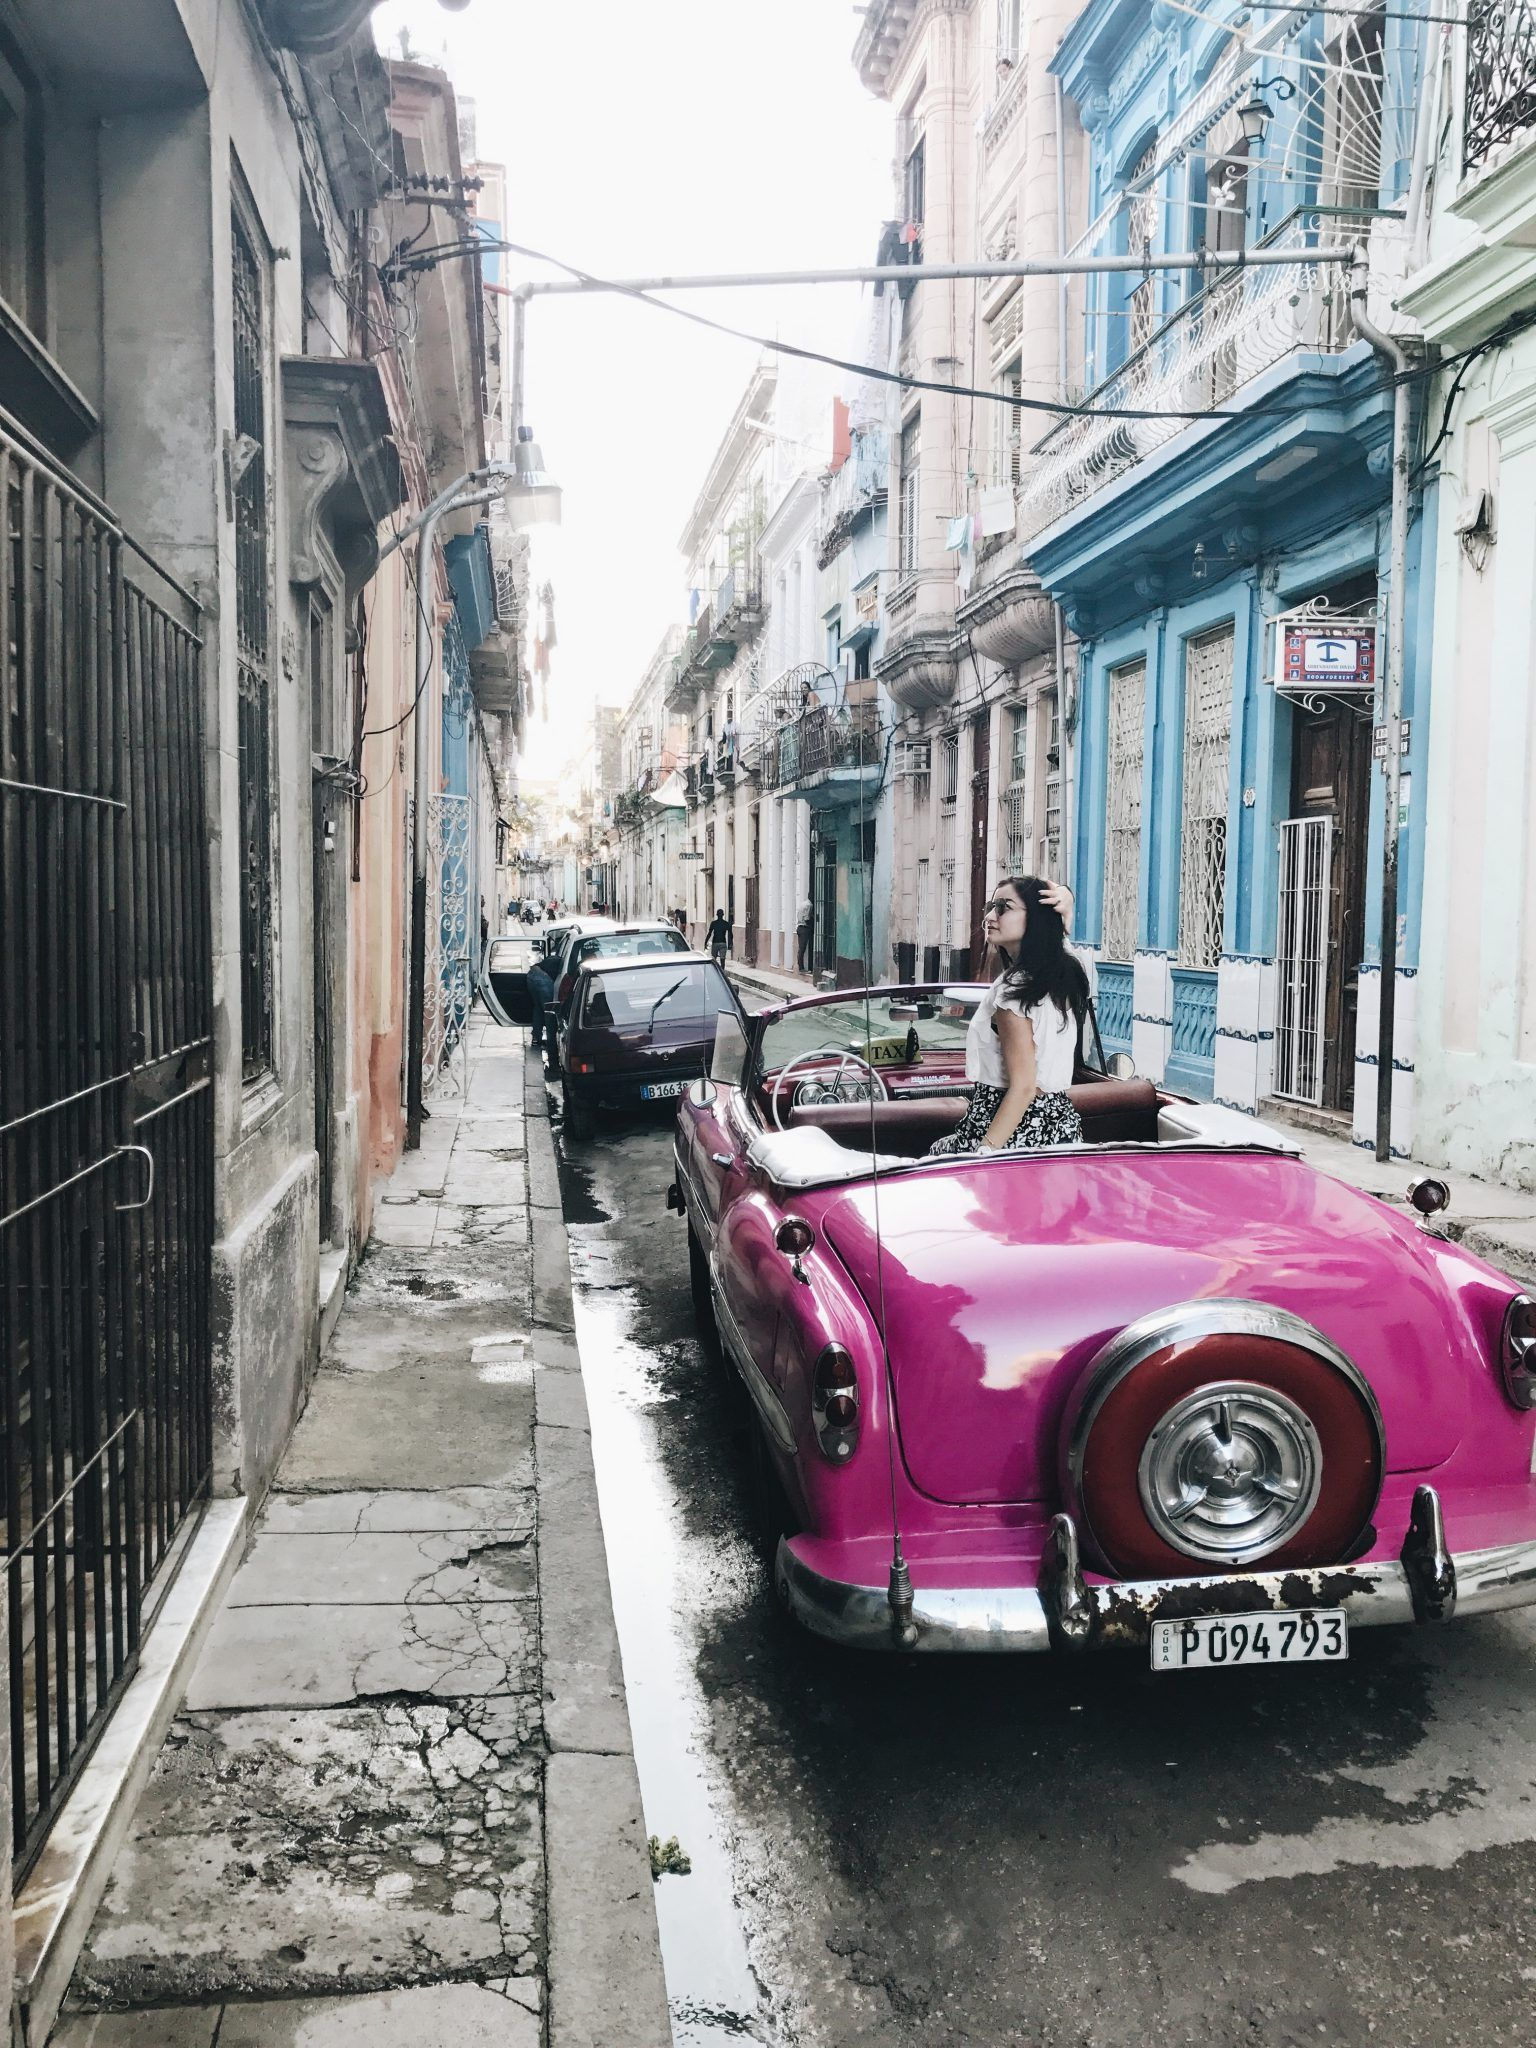 If you have an open mind, a sense of compassion, and the longing to get deeply intertwined in Cuban culture - it will be like nothing you have experienced before. Get lost in one of the most unique, untouched, and authentic cultures that you will ever experience.